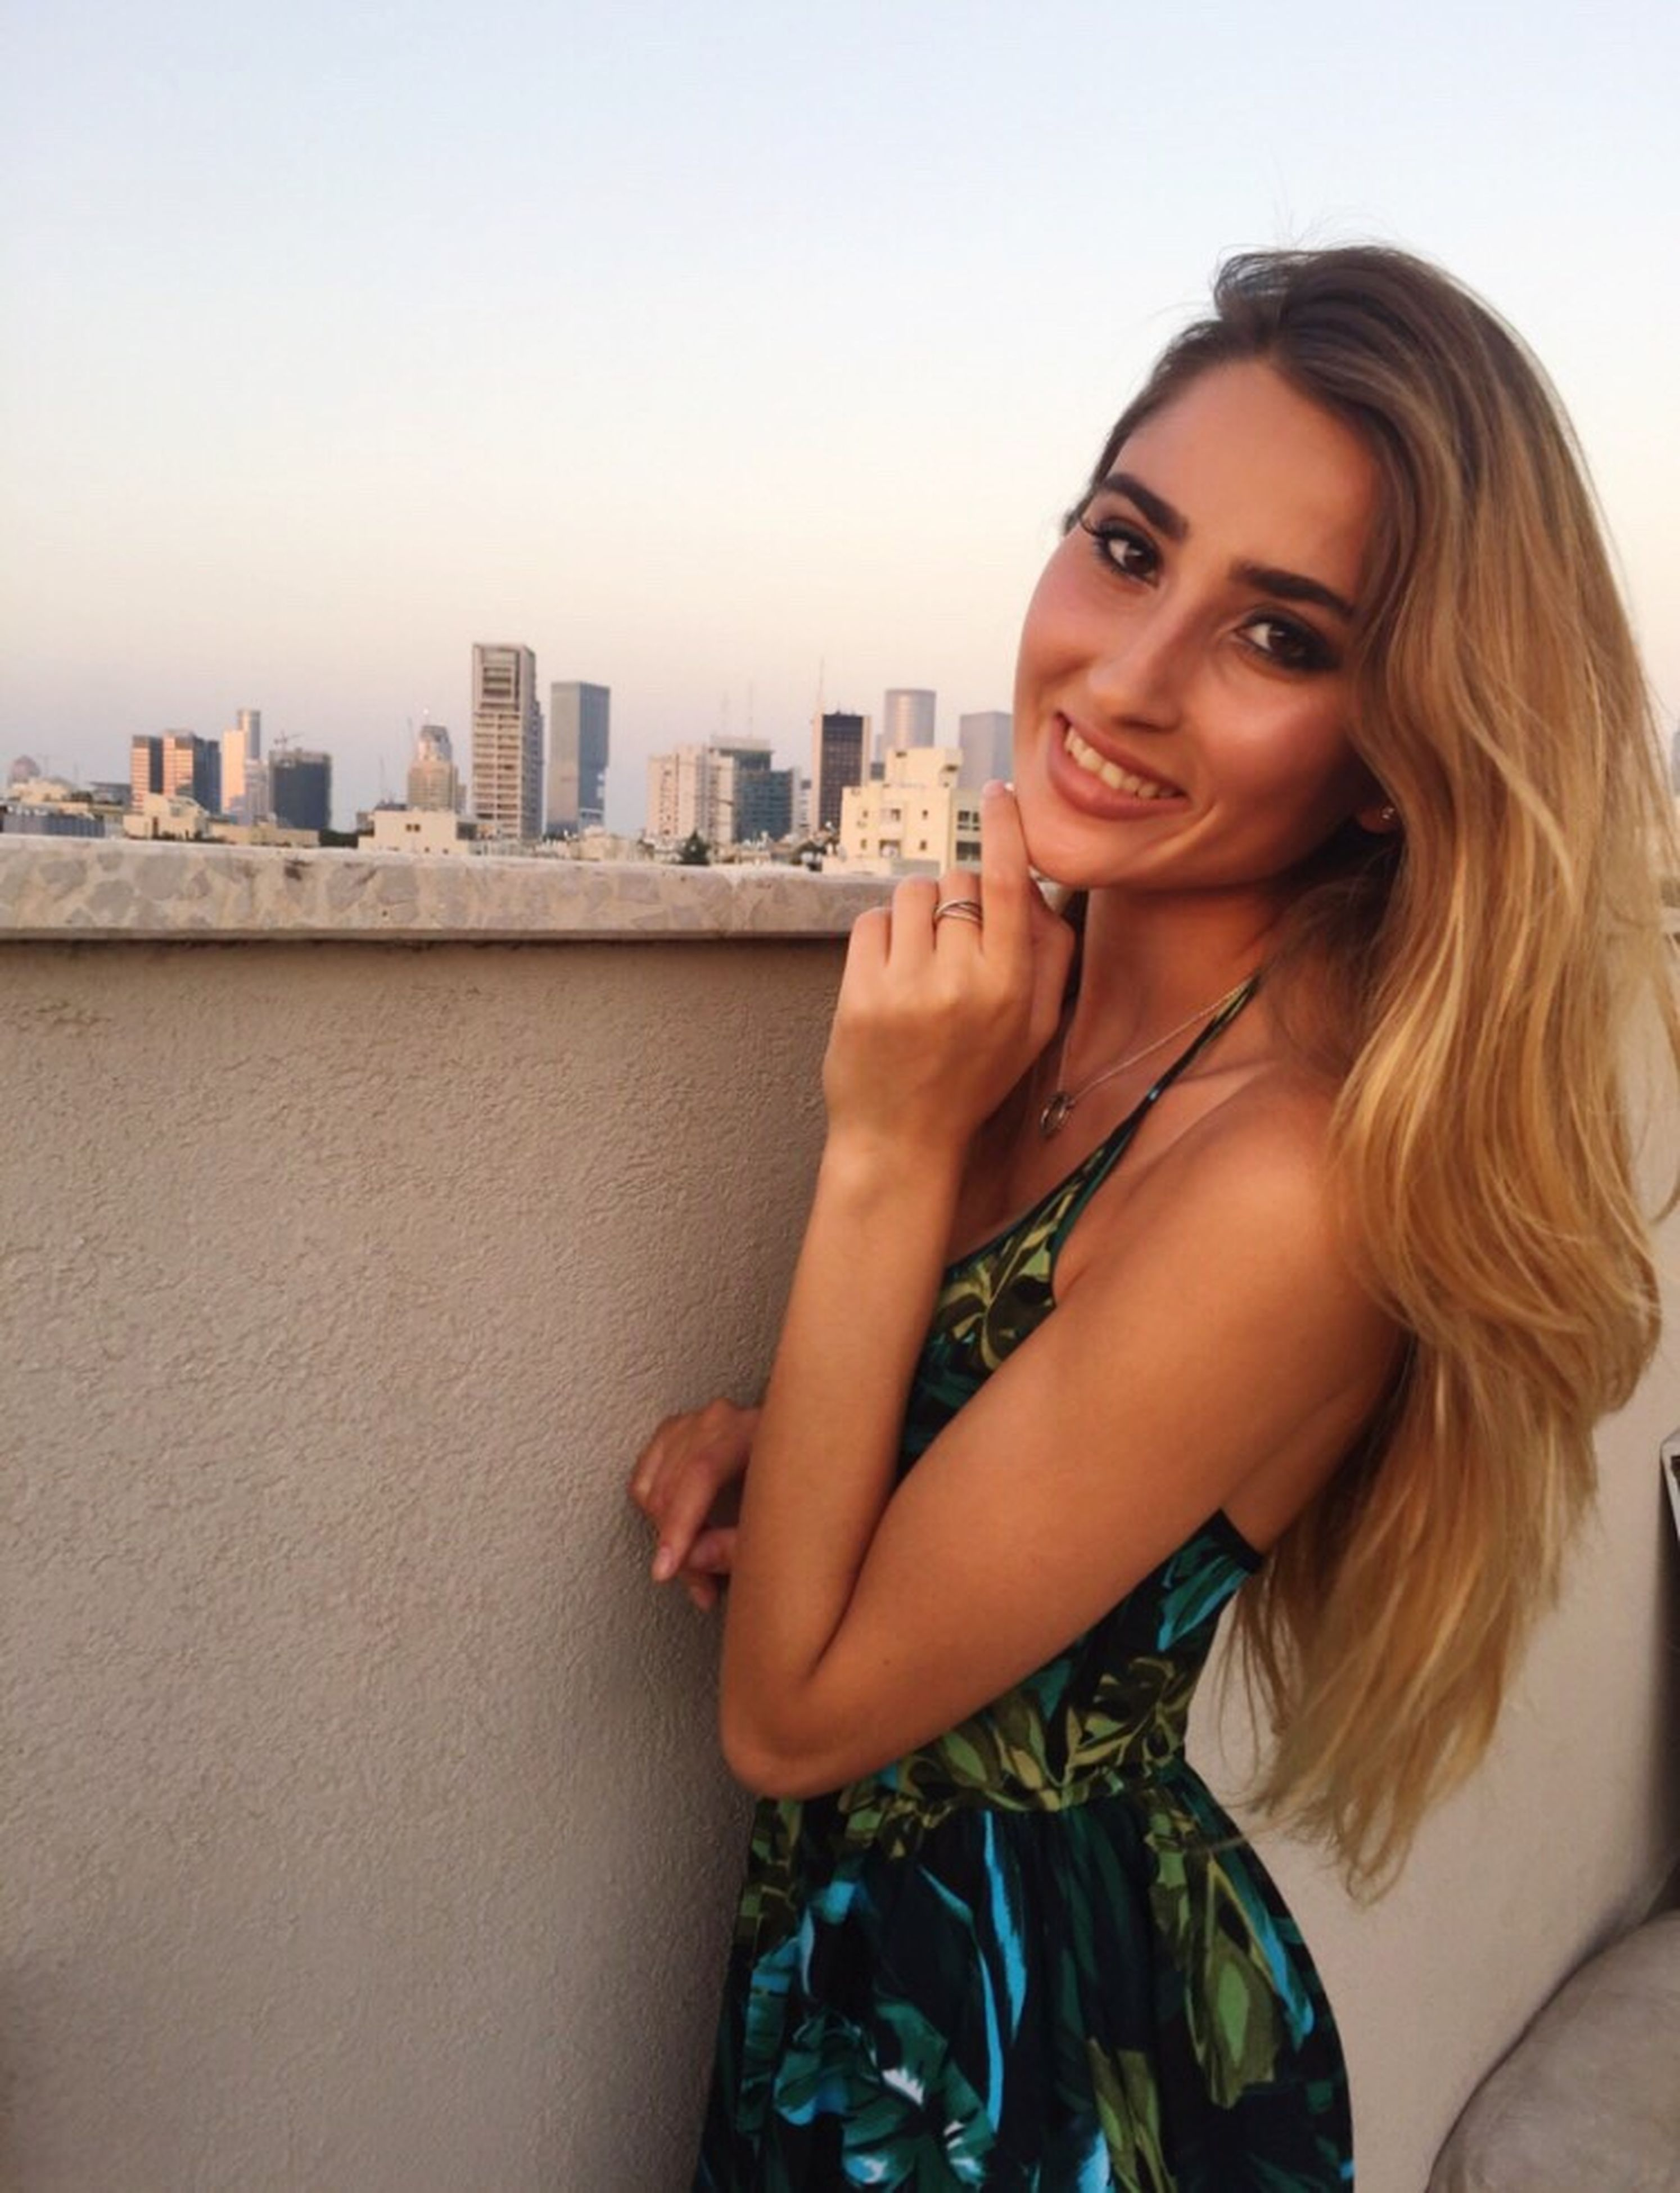 smiling, portrait, long hair, one person, city, architecture, built structure, looking at camera, fashion, beautiful woman, beauty, happiness, blond hair, building exterior, skyscraper, beautiful people, young adult, fashion model, real people, outdoors, standing, cityscape, modern, young women, day, sky, adult, people, adults only